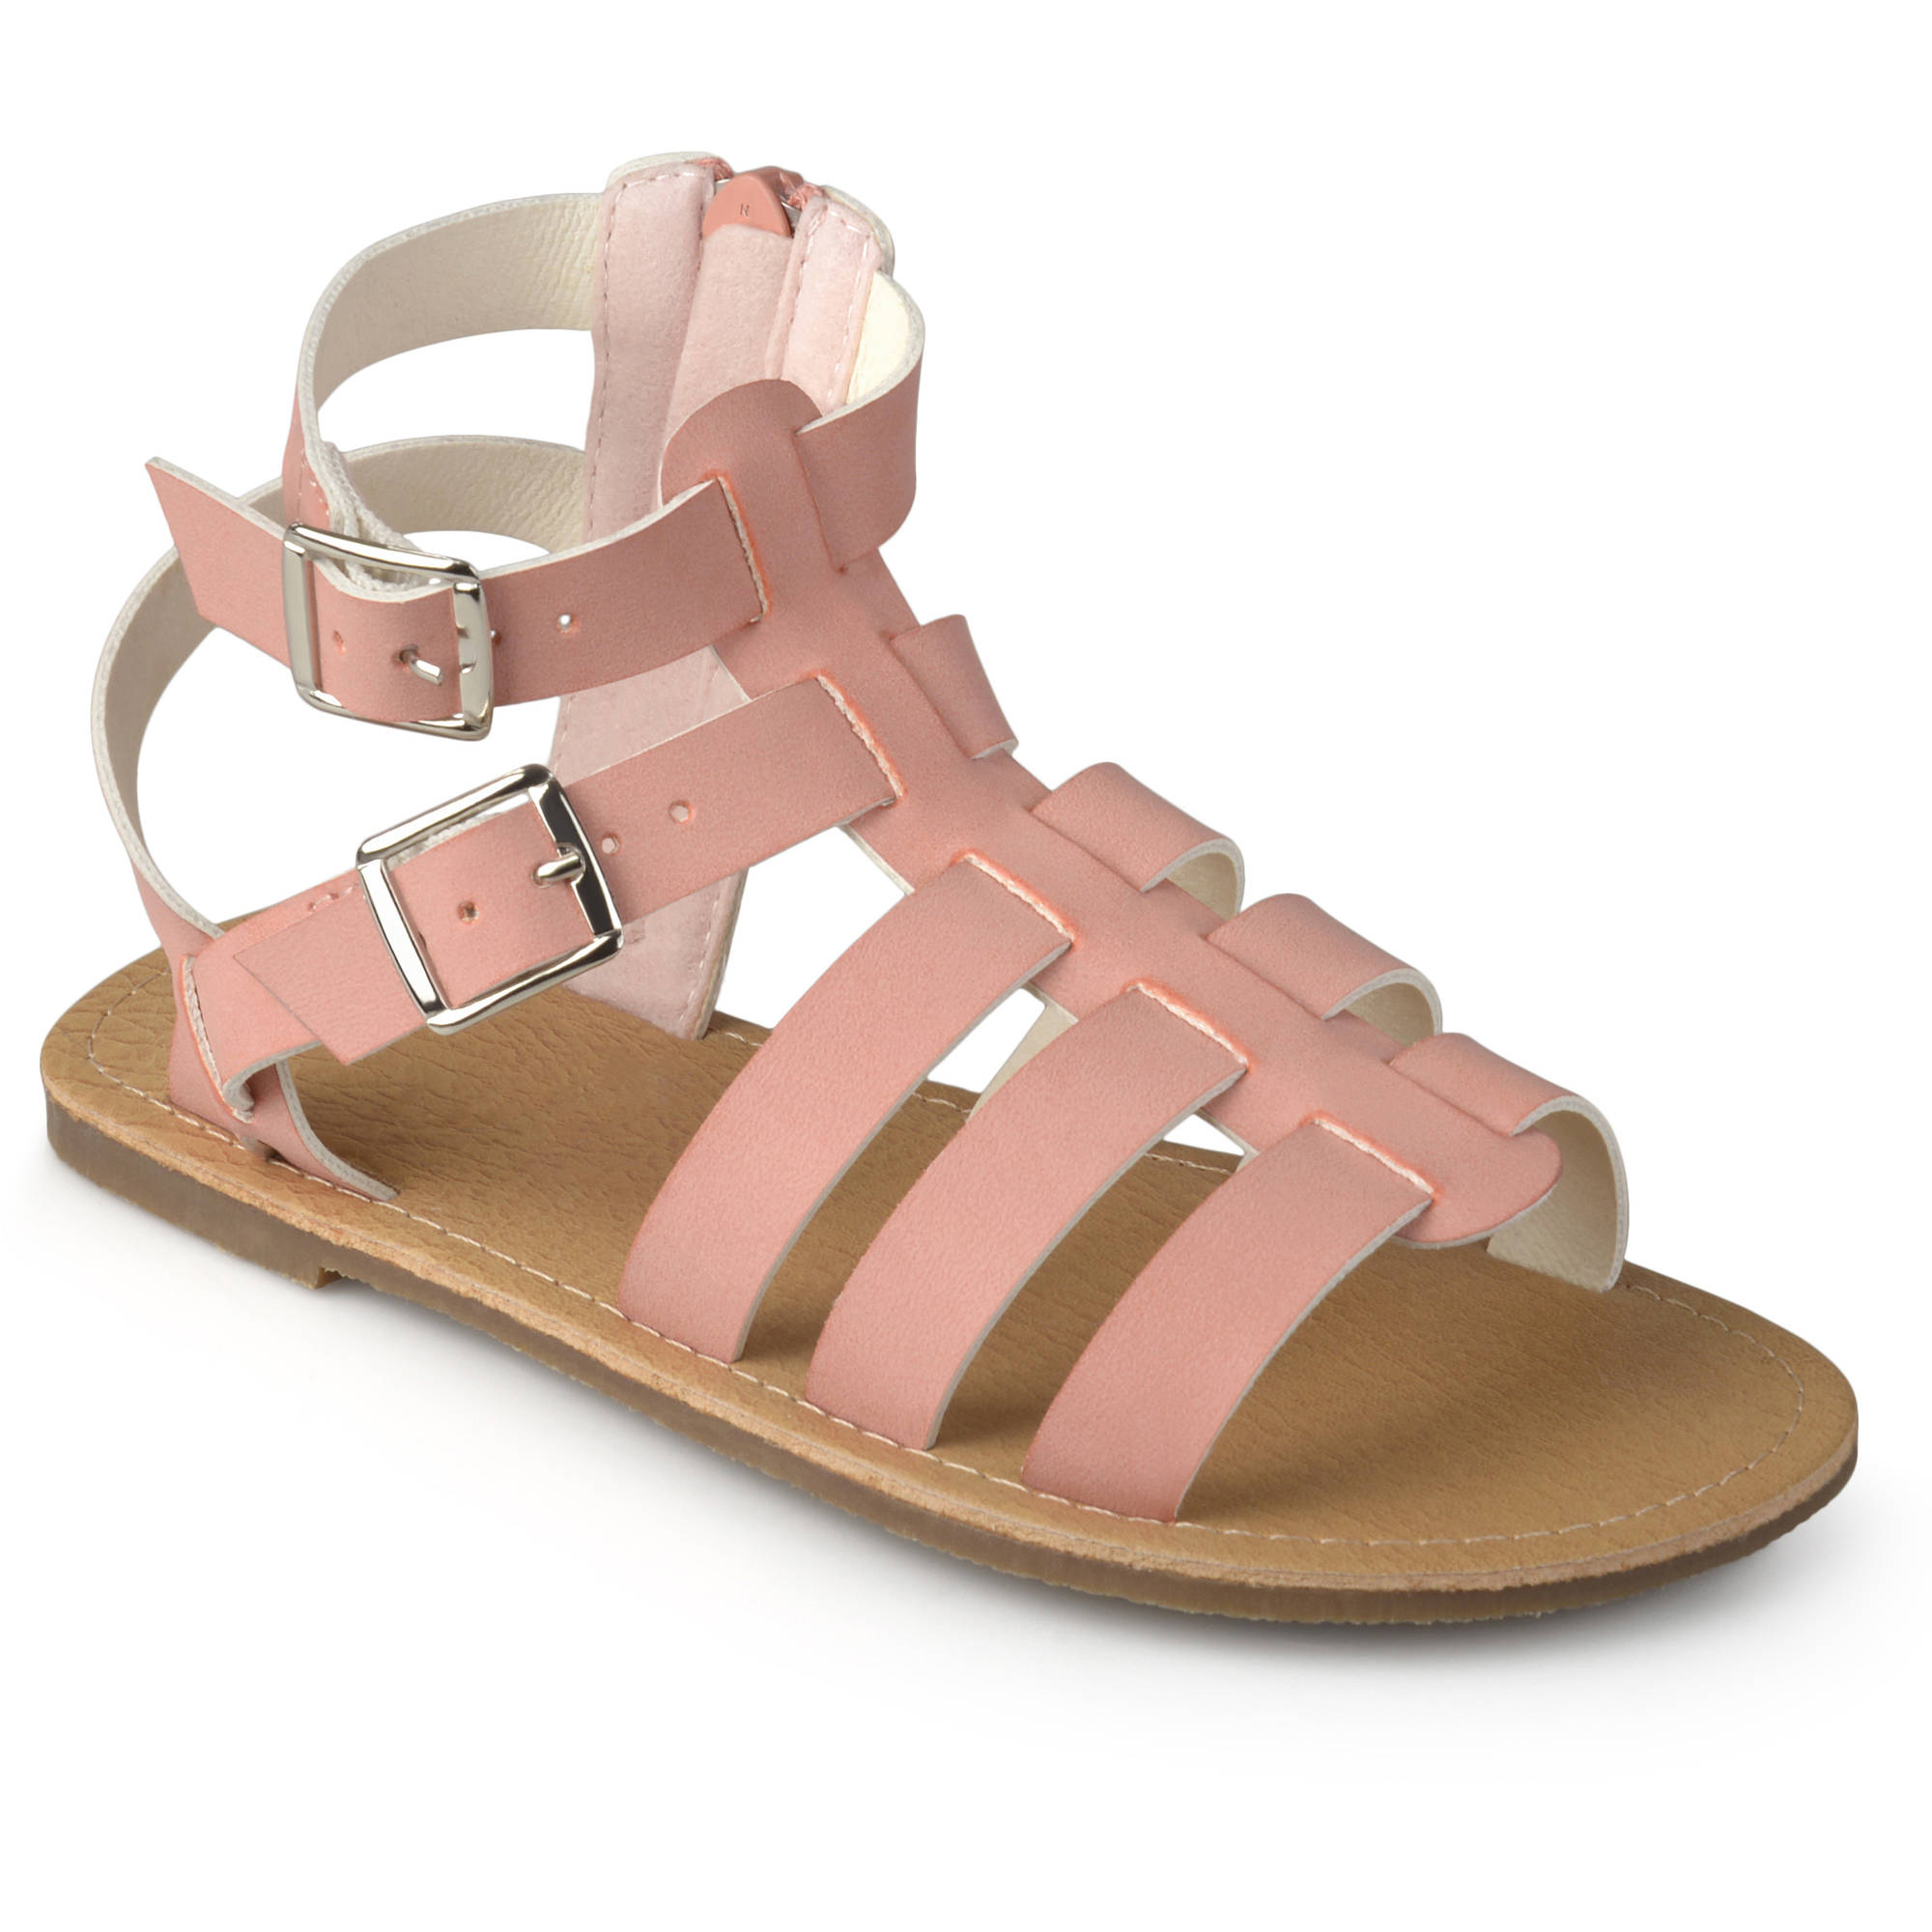 Brinley Kids Little Girl Faux Leather Buckle Gladiator Sandals